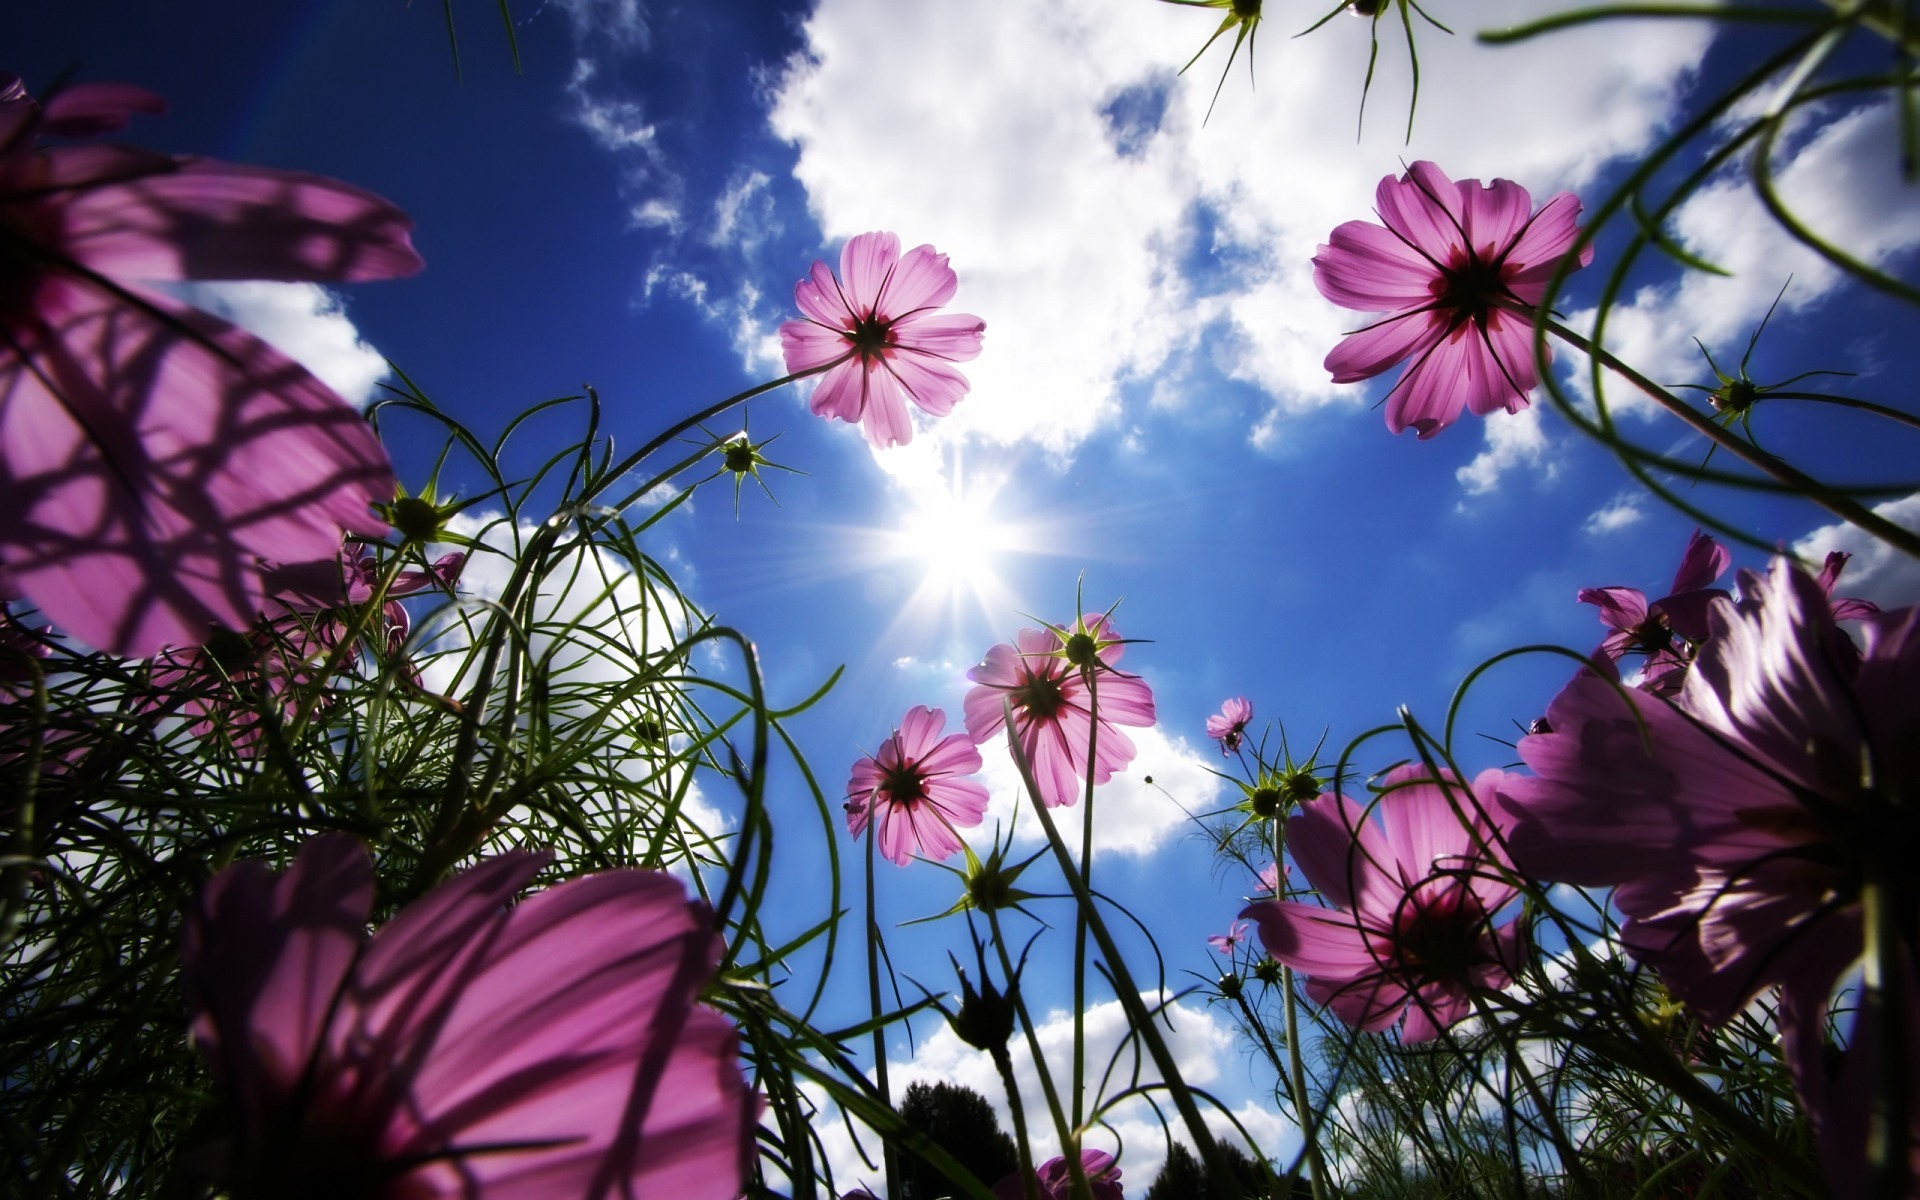 sunny flowers wallpaper flowers nature wallpapers in jpg format for